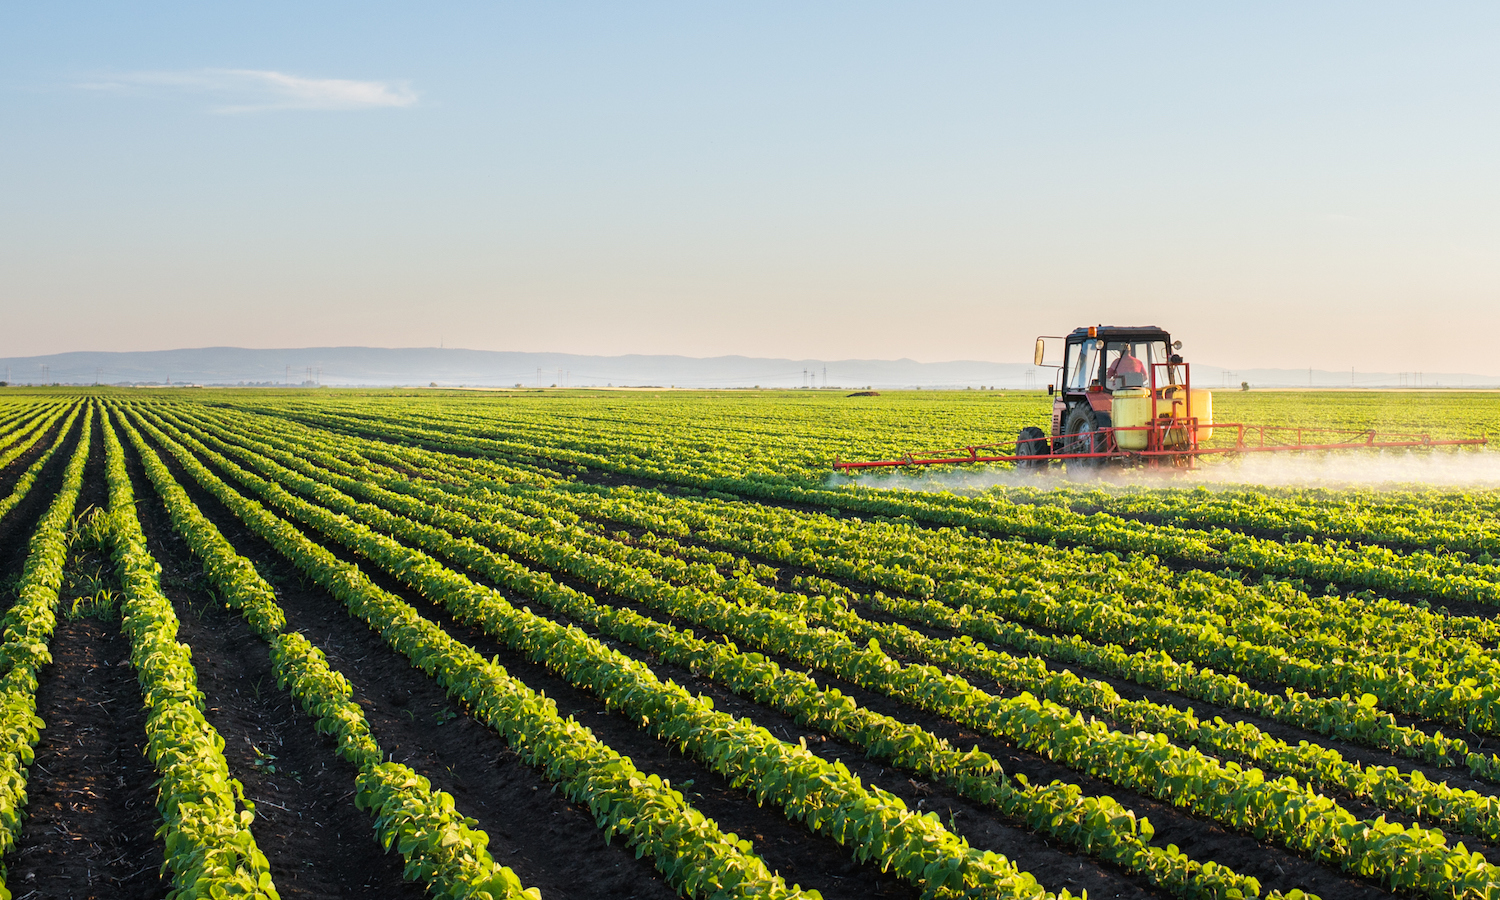 Founded by undergraduates at UC Berkeley, Herbicide-Free Campus works to eliminate synthetic herbicides from schools across America.